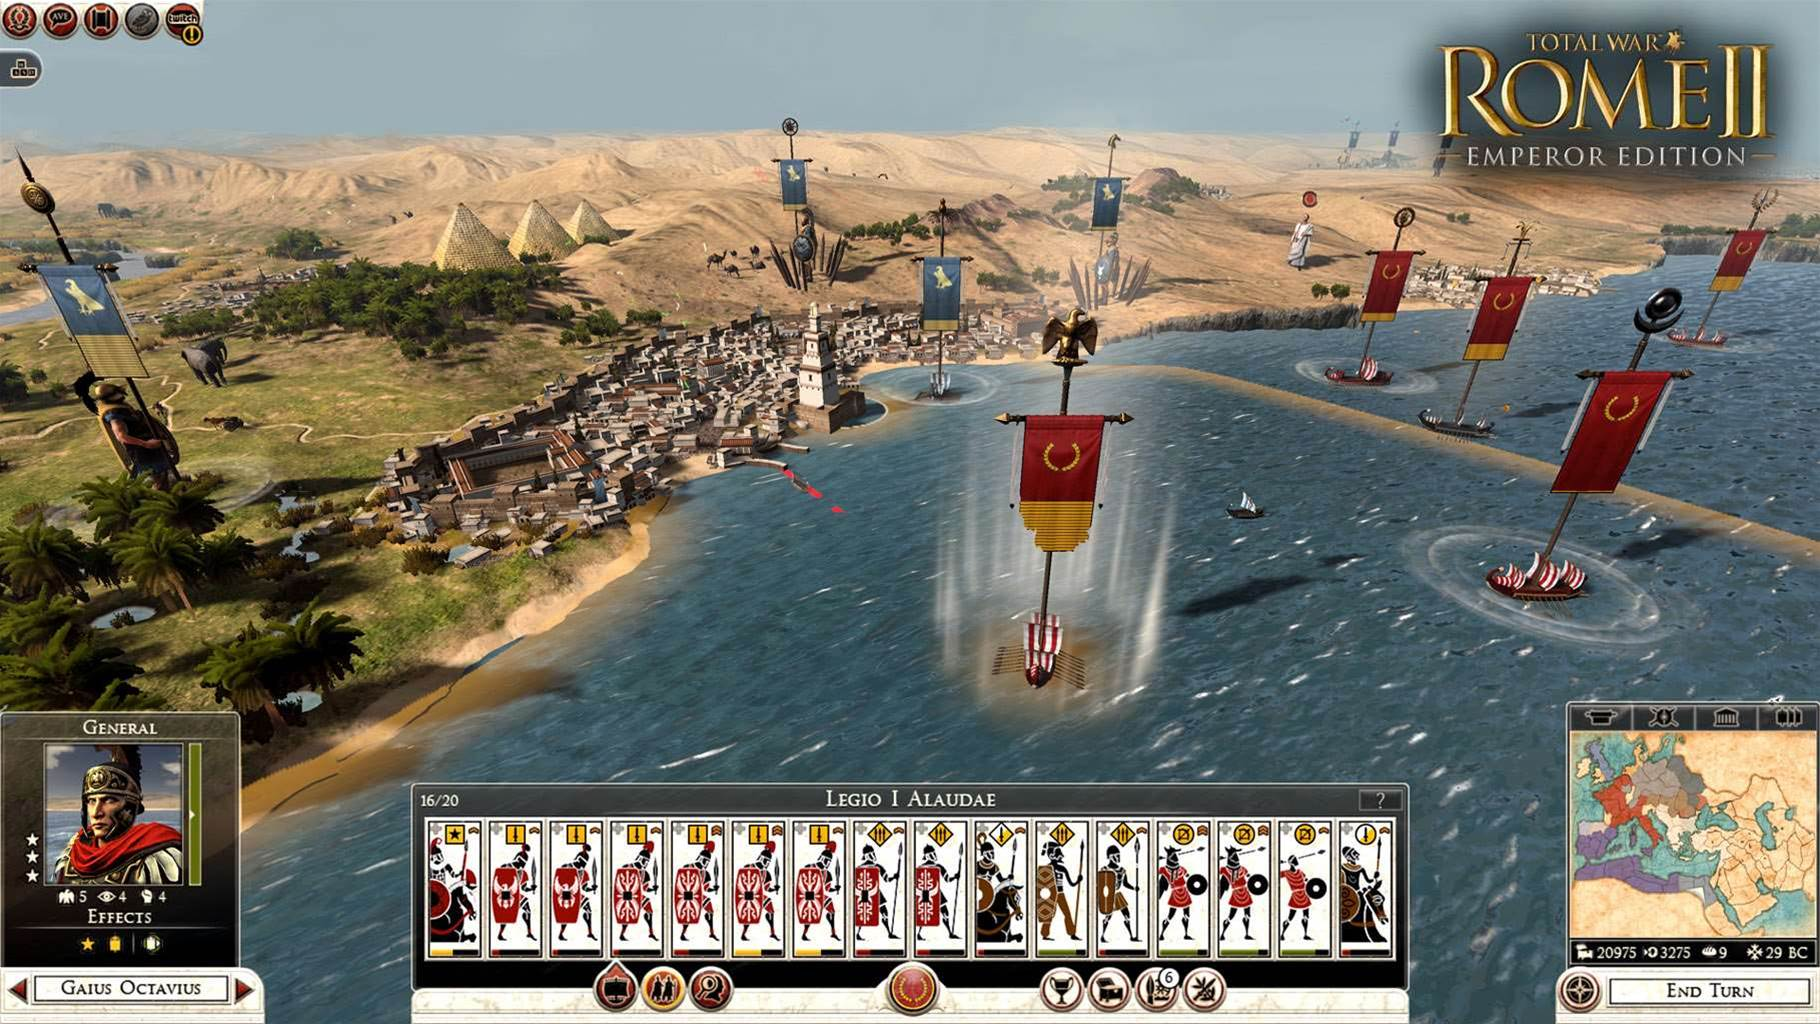 New Rome II expansion coming soon